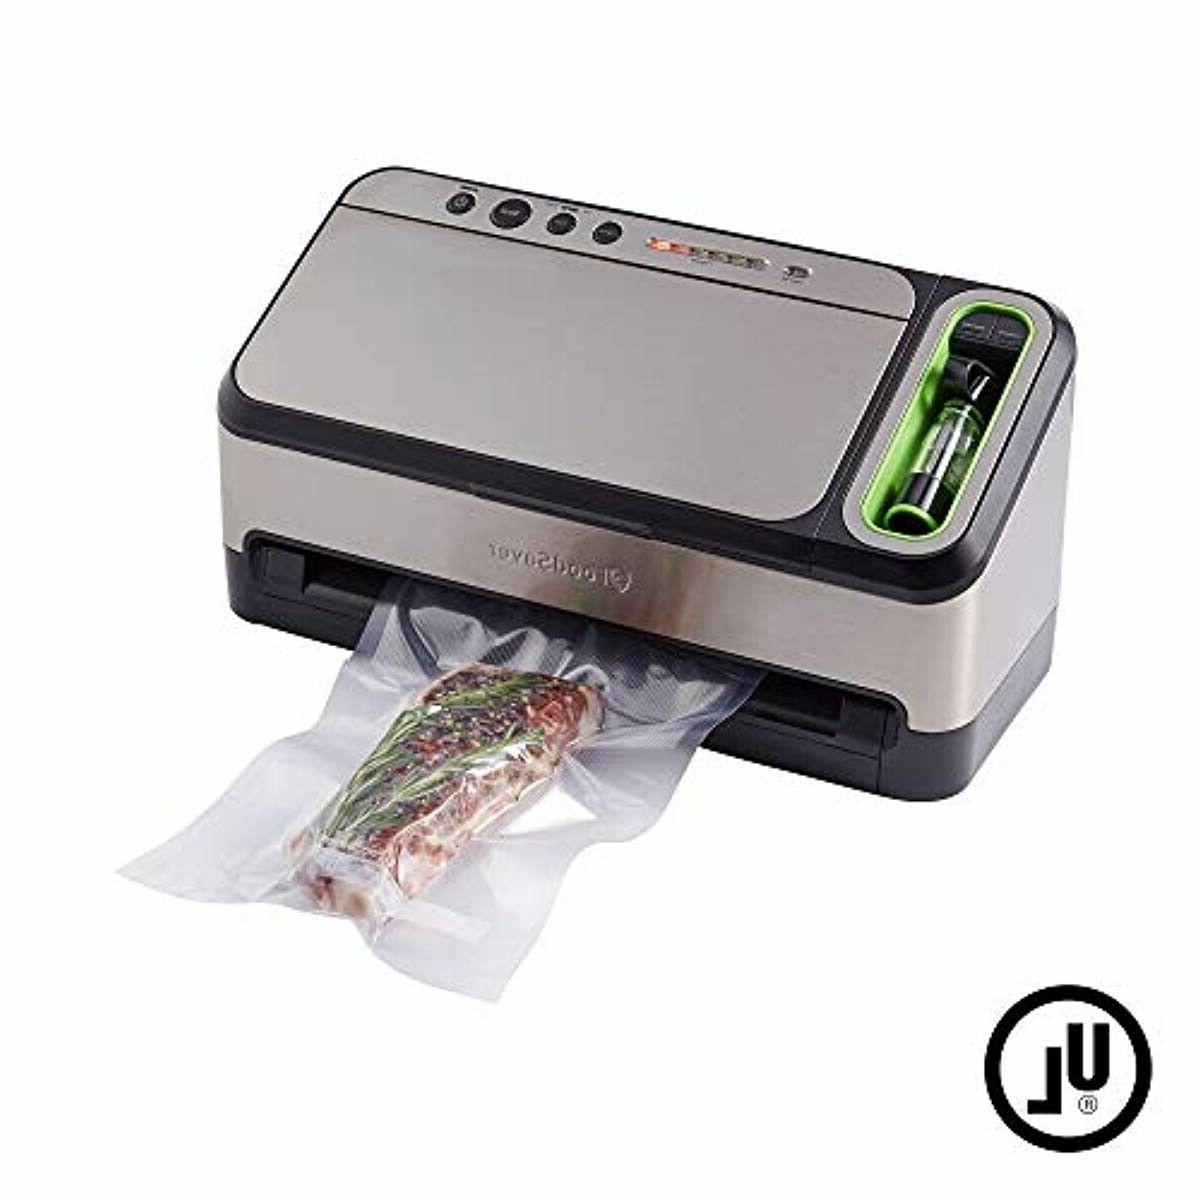 FoodSaver Sealer Machine Automatic Bag Detection and